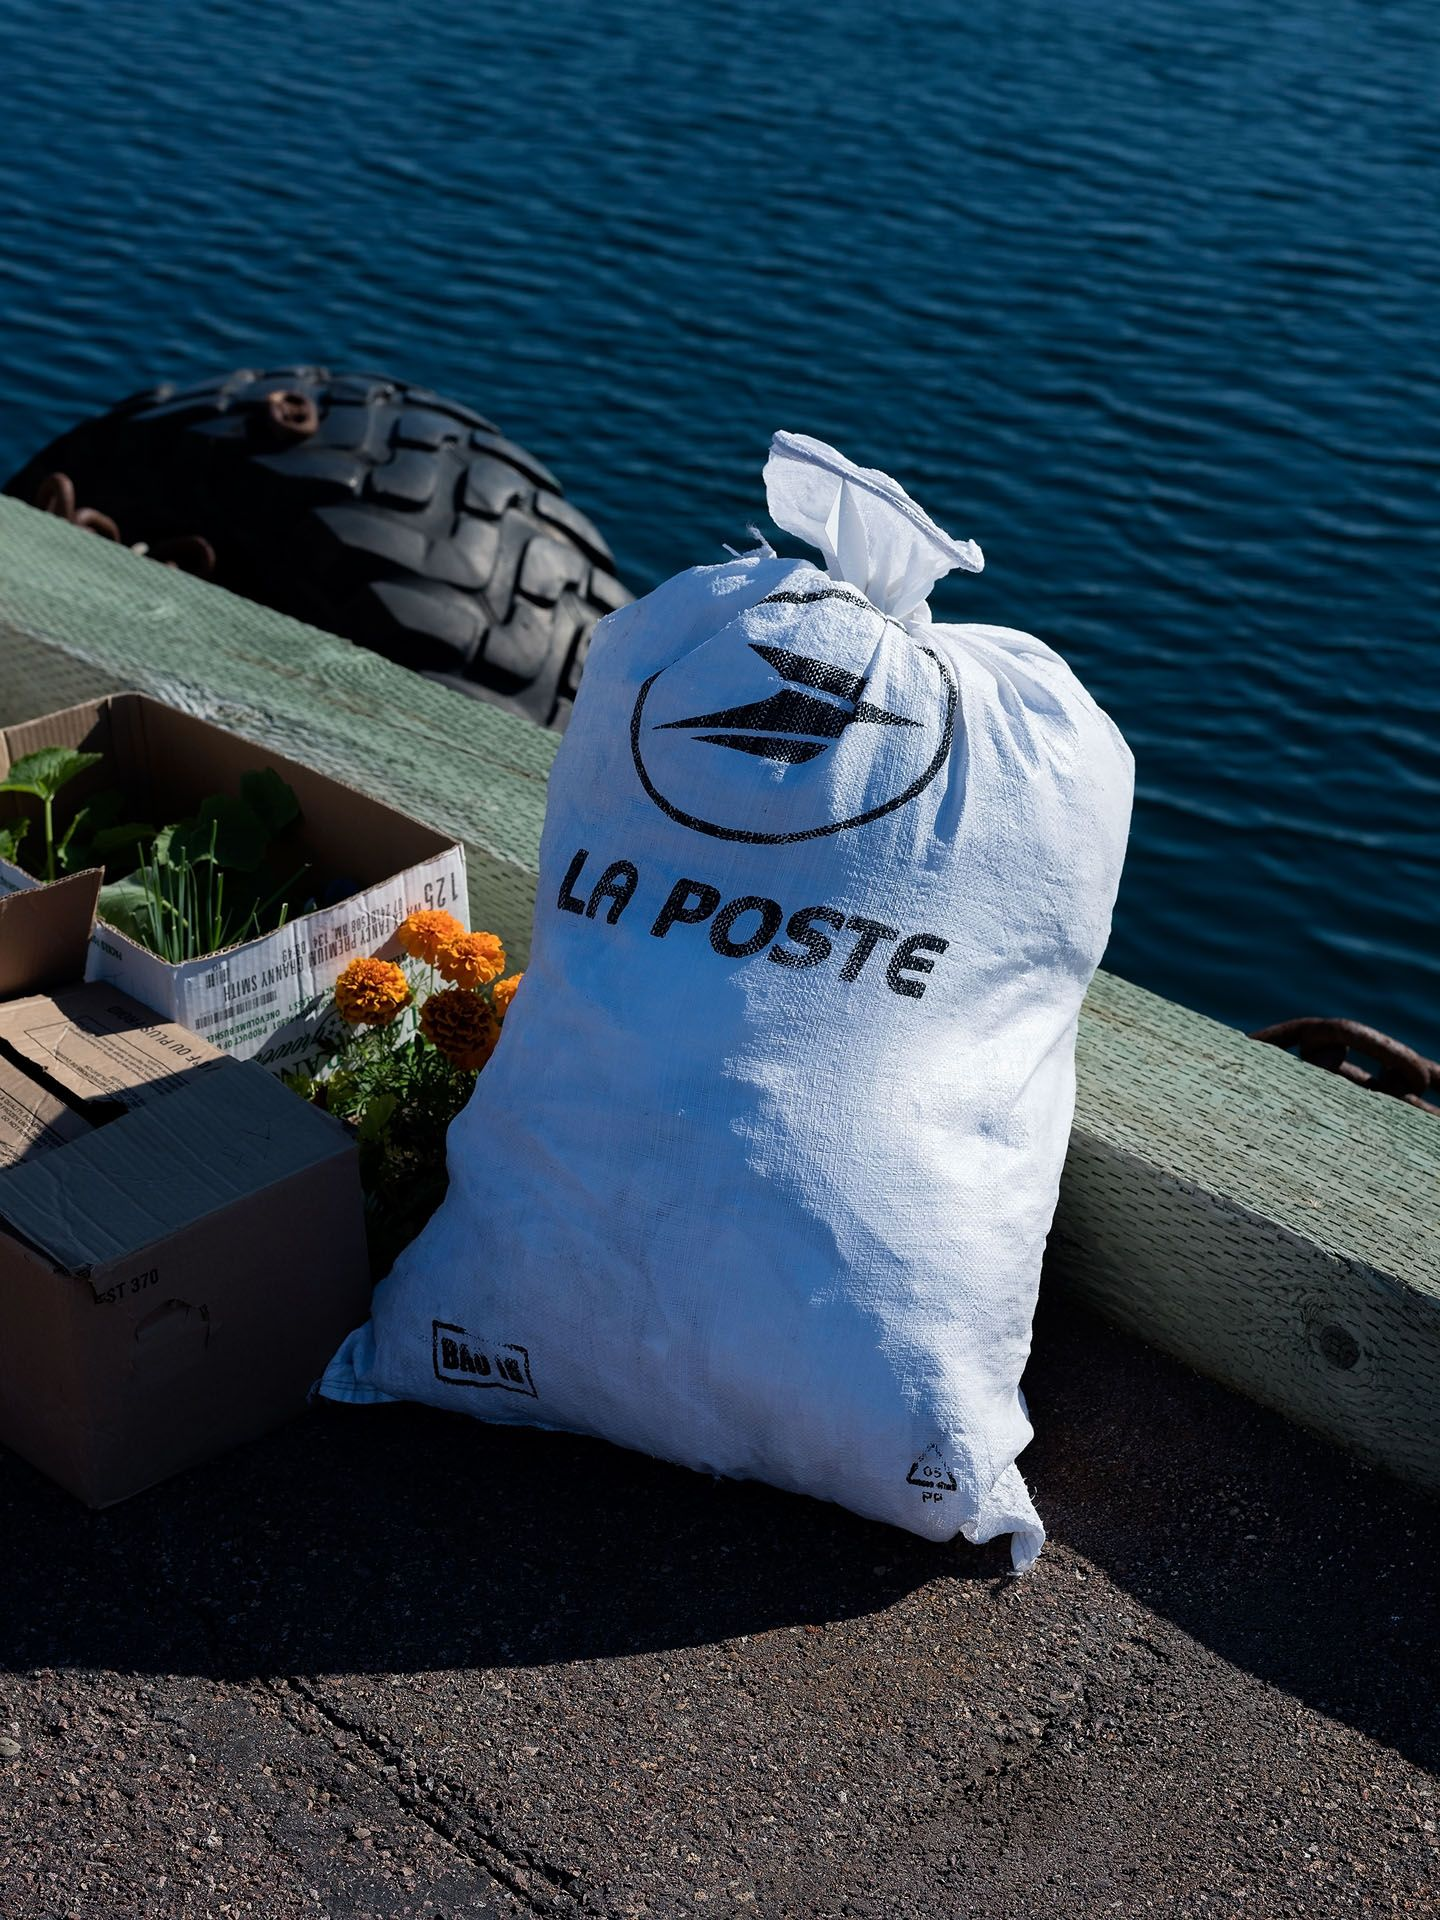 postal office bag full of letters on the dock next to water by Guillaume Simoneau in Saint-Pierre-et-Miquelon for M le mag Le Monde